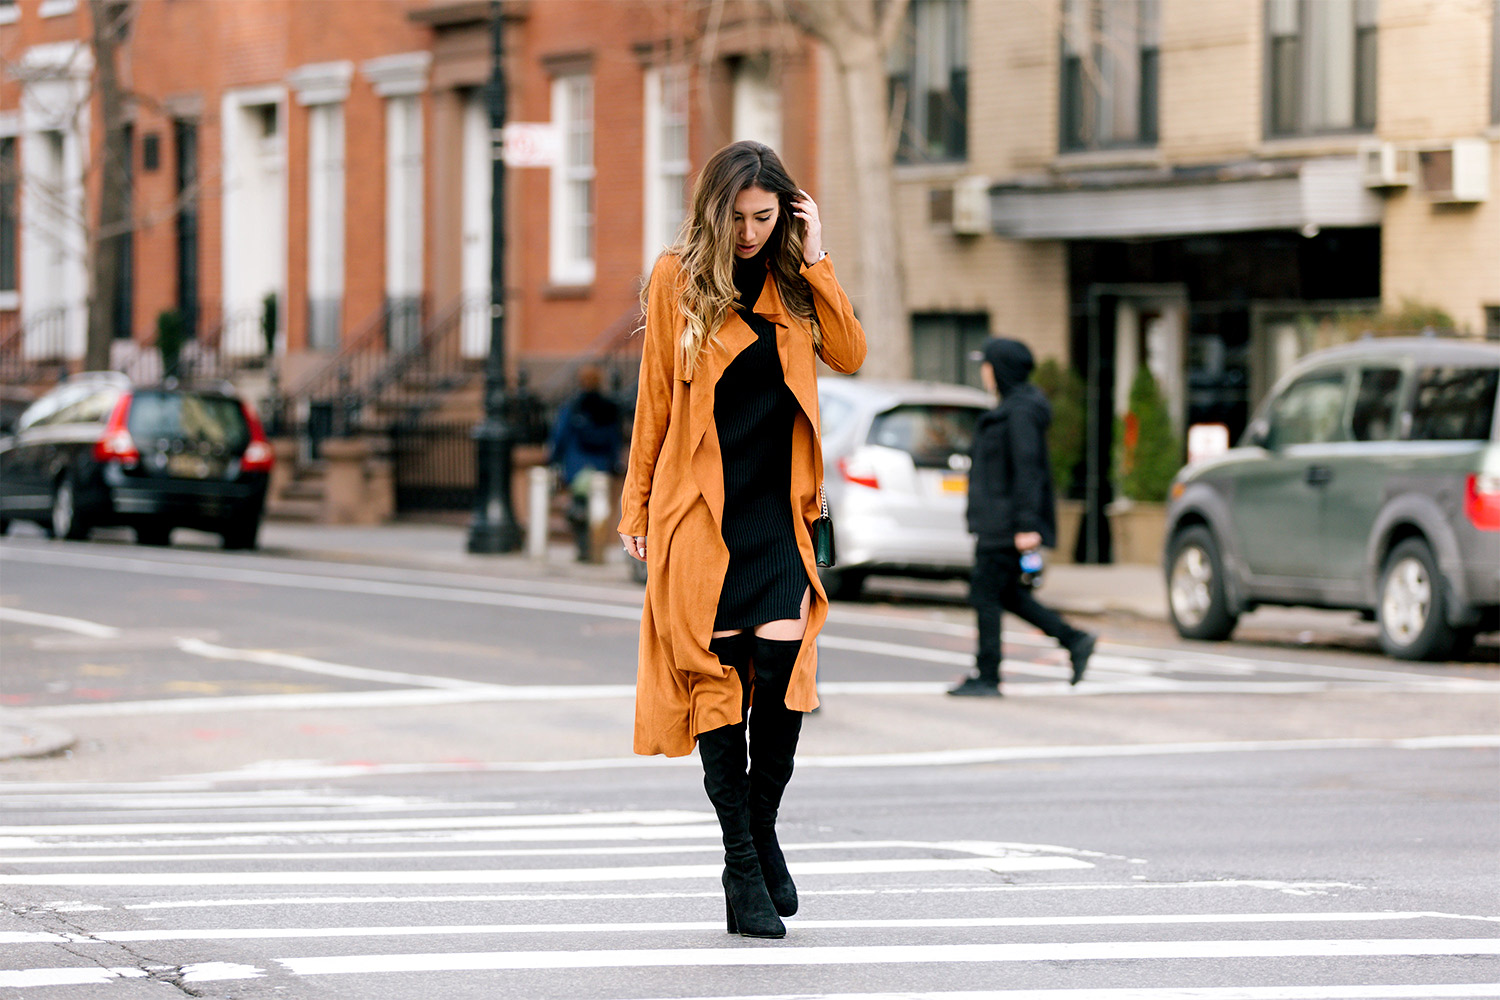 Fashion blogger Ulia Ali in Soho, New York. True Manhattan girl.